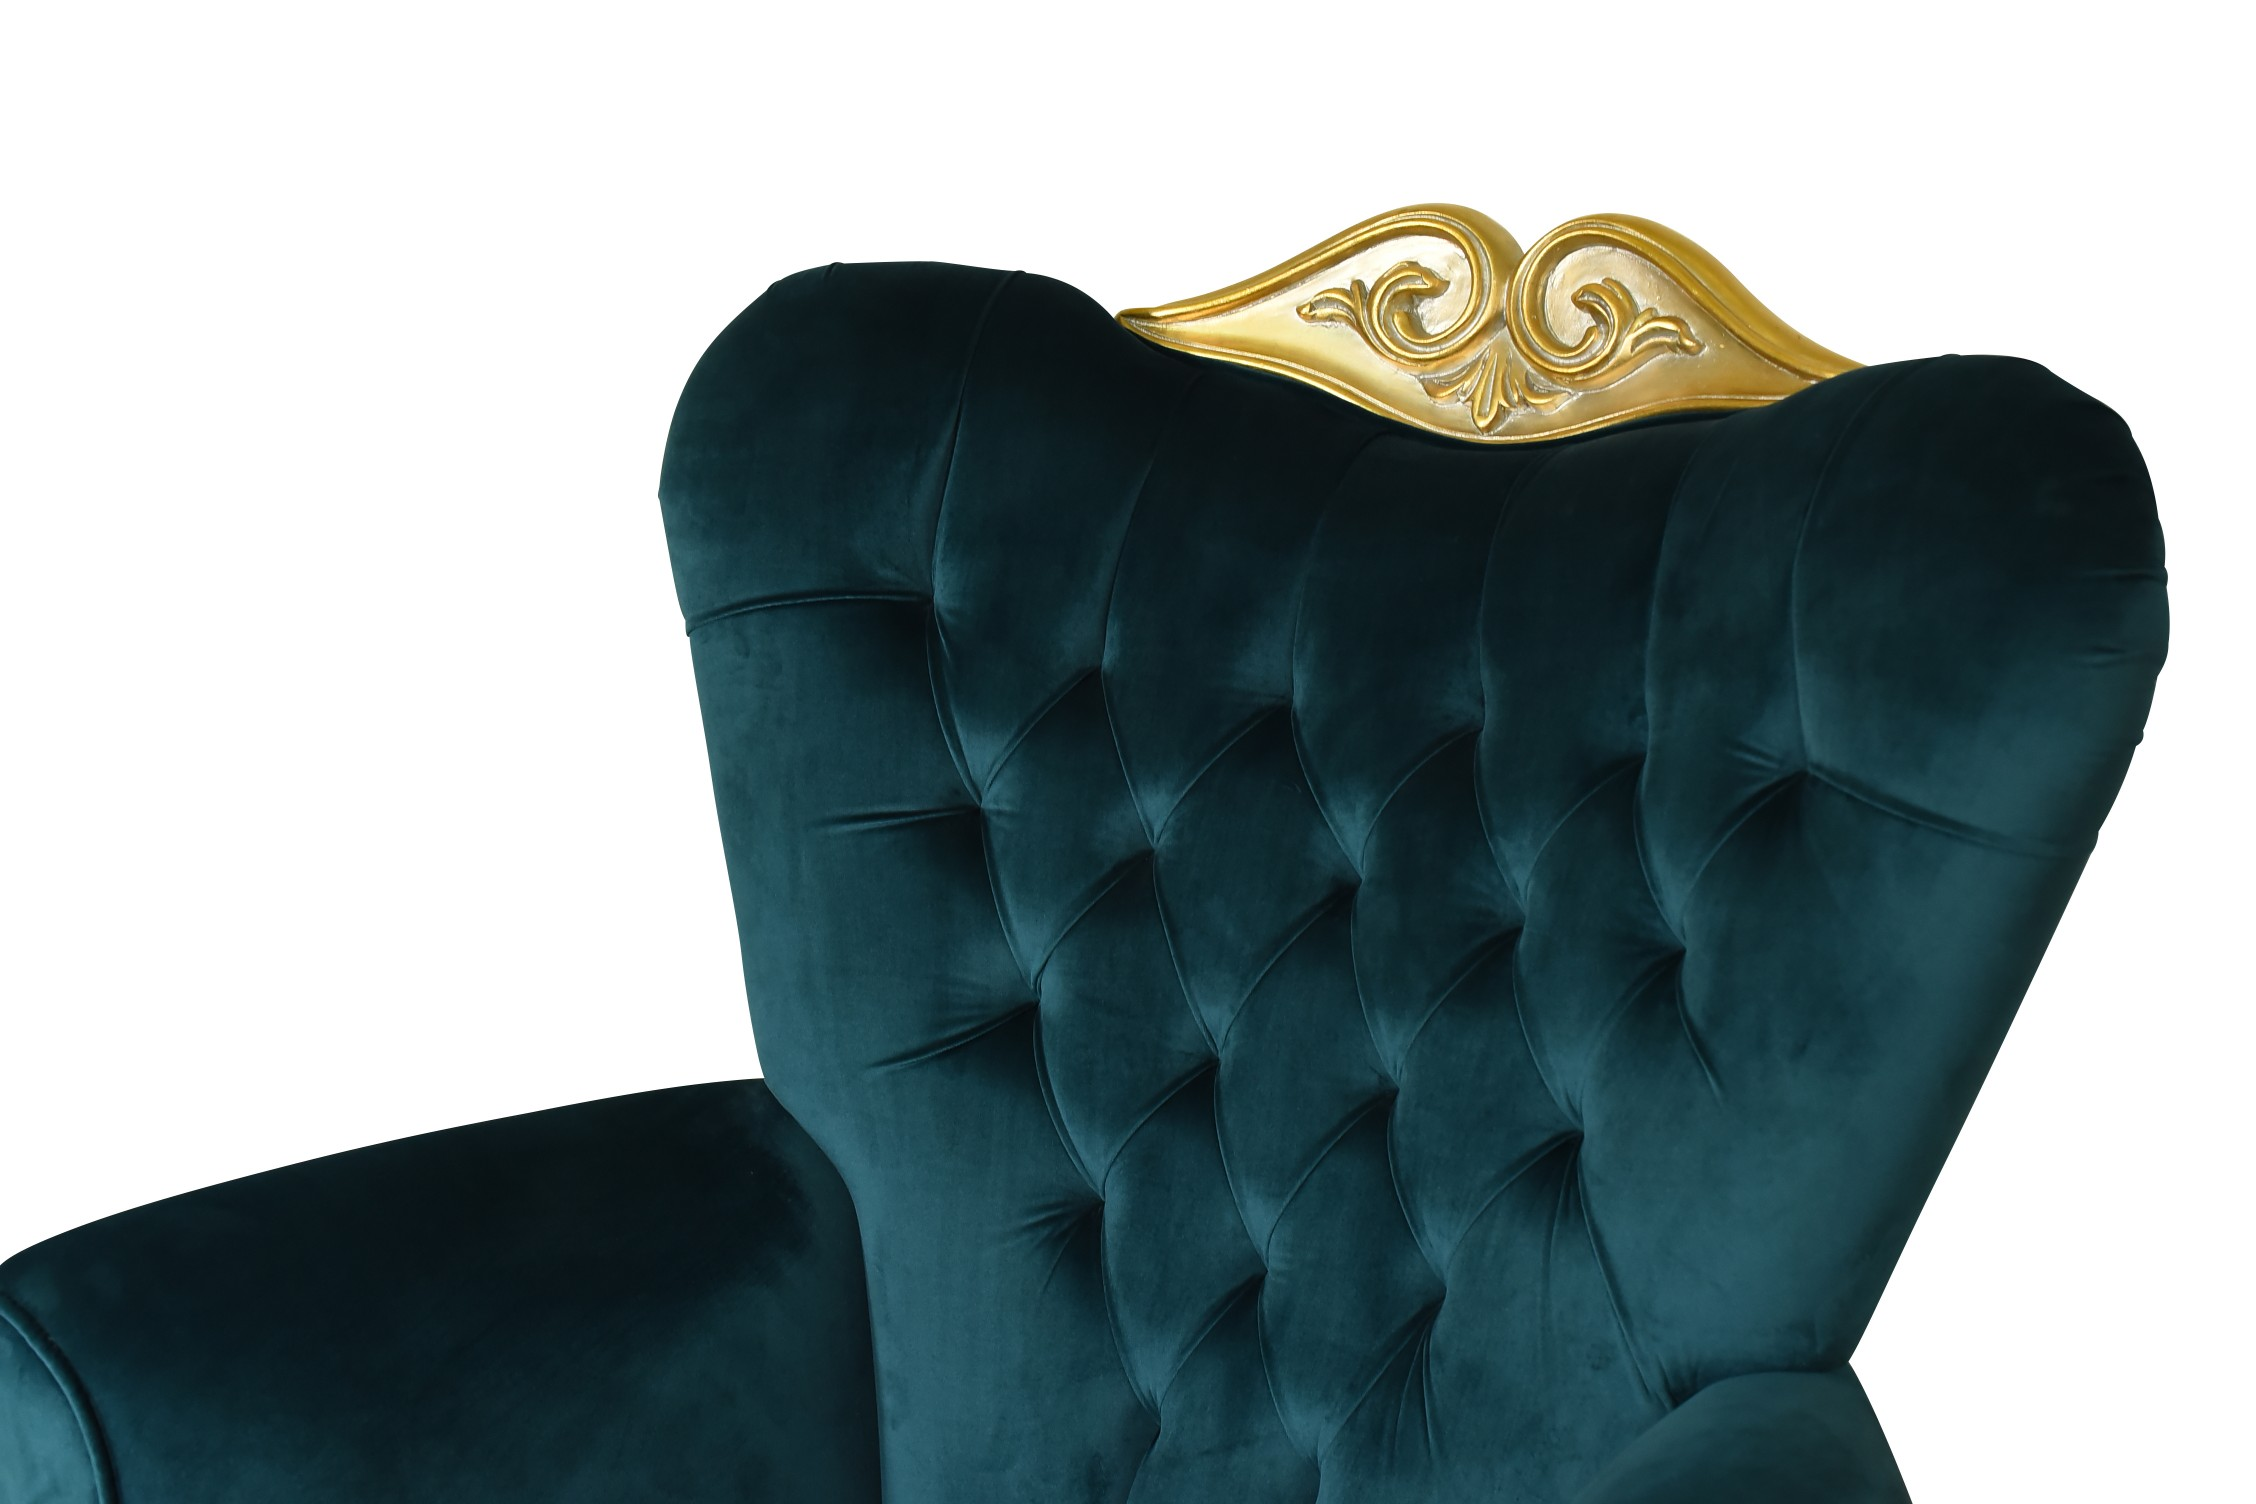 MADE TO ORDER / Romarin, French Style , Gold Leaf, Tufted Green Turquoise Velvet Armchair (Set of 2)